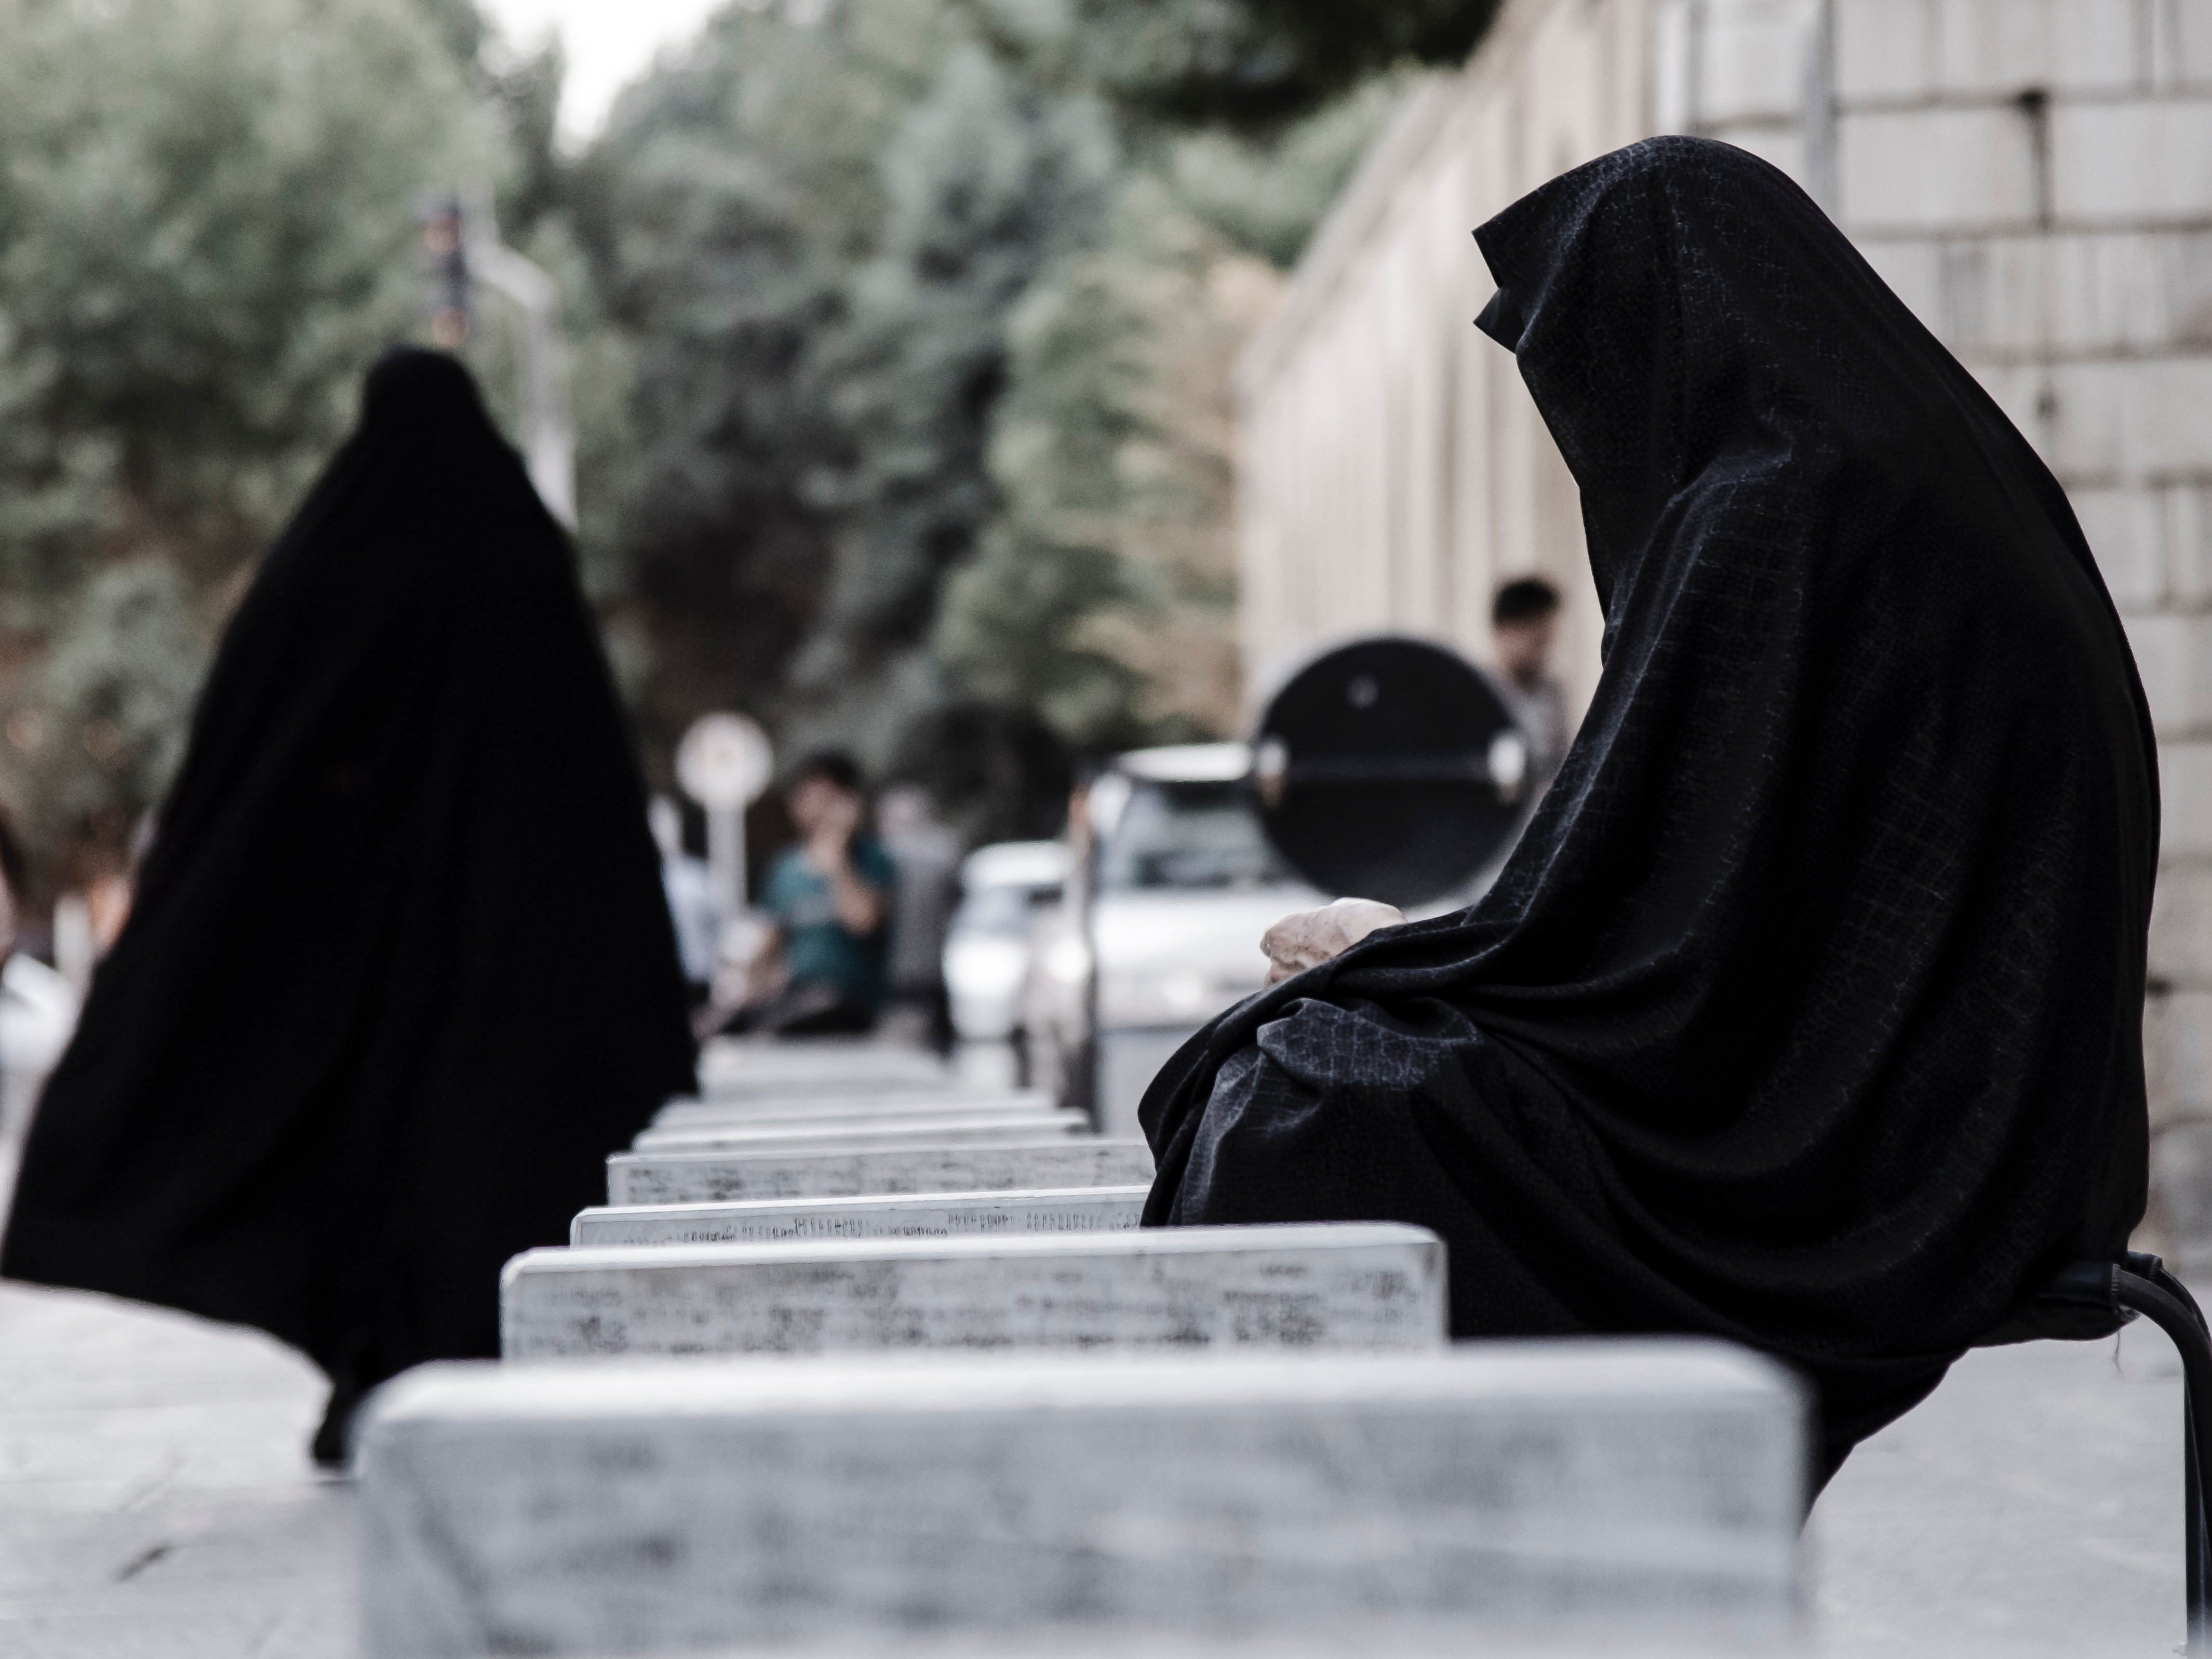 Relationships key to sharing Christ's hope with Muslim women